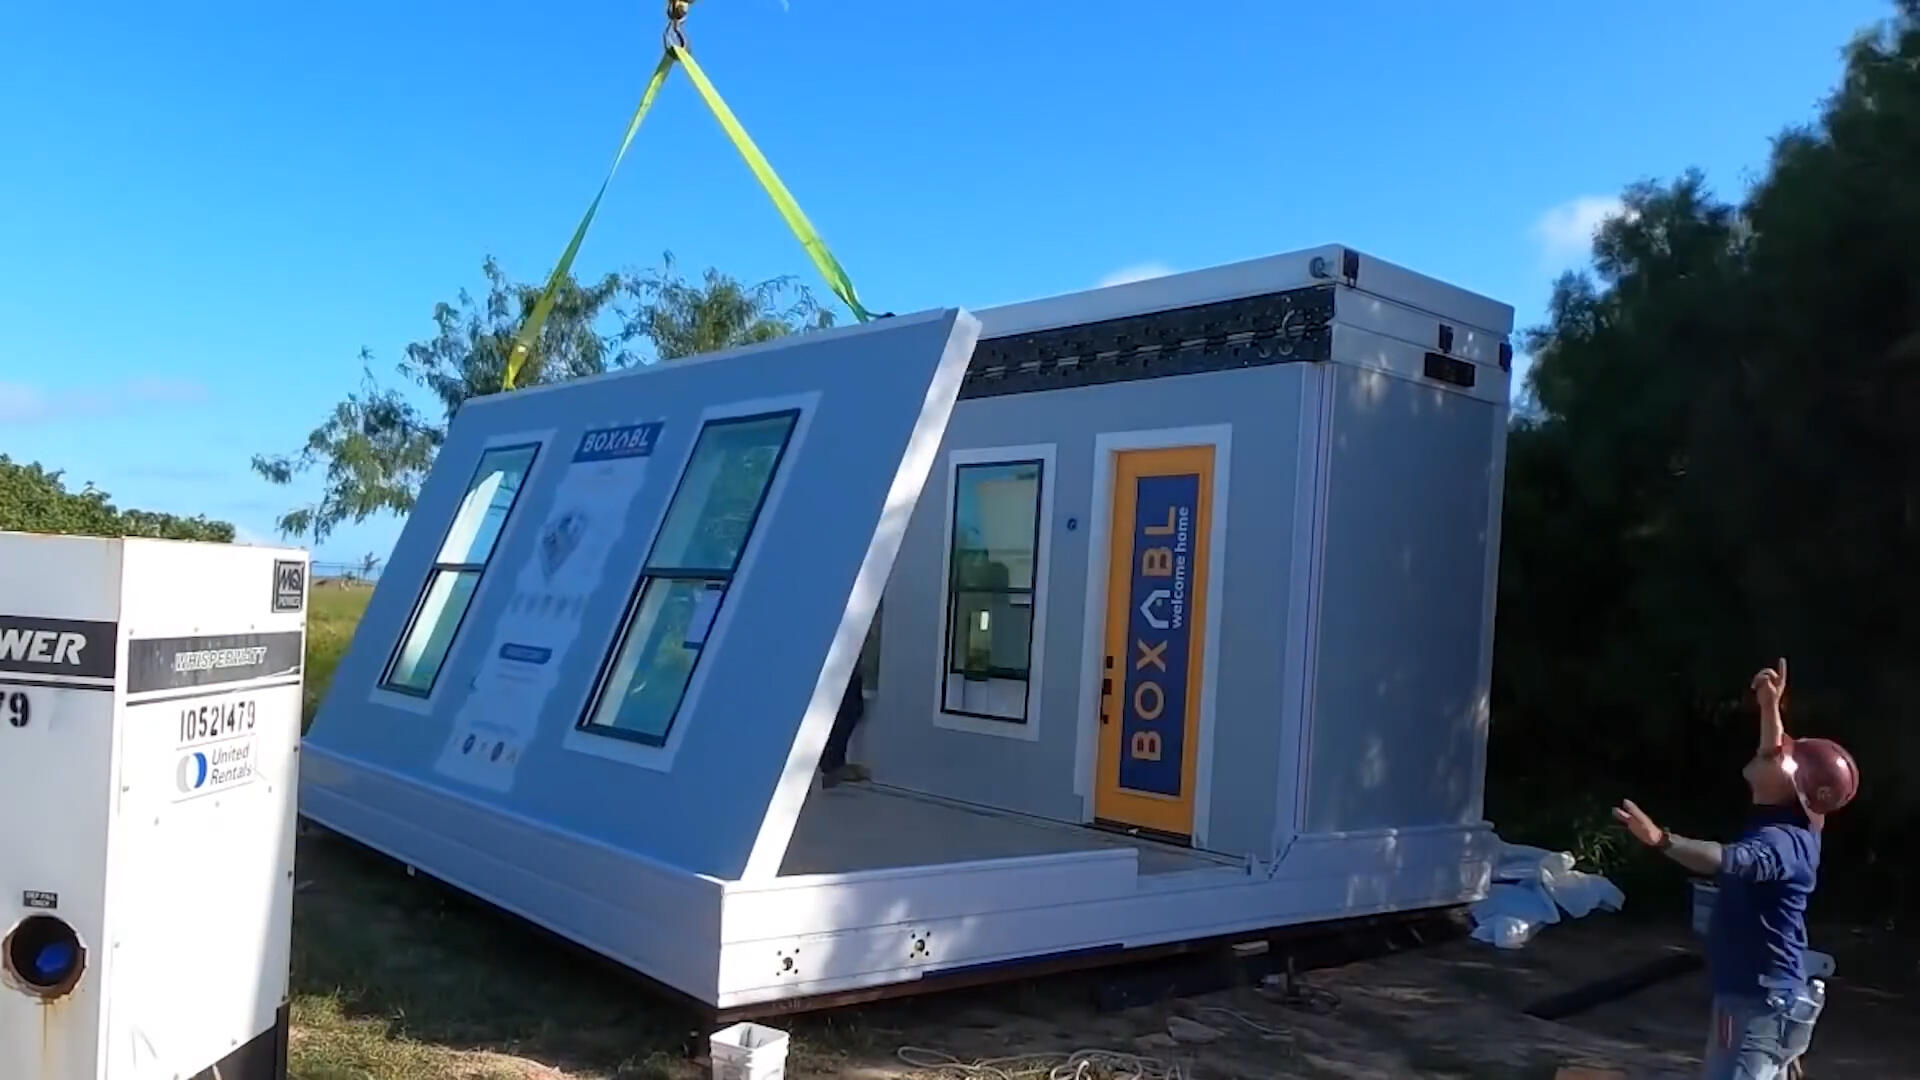 Boxabl aims to build folding houses in 90 minutes